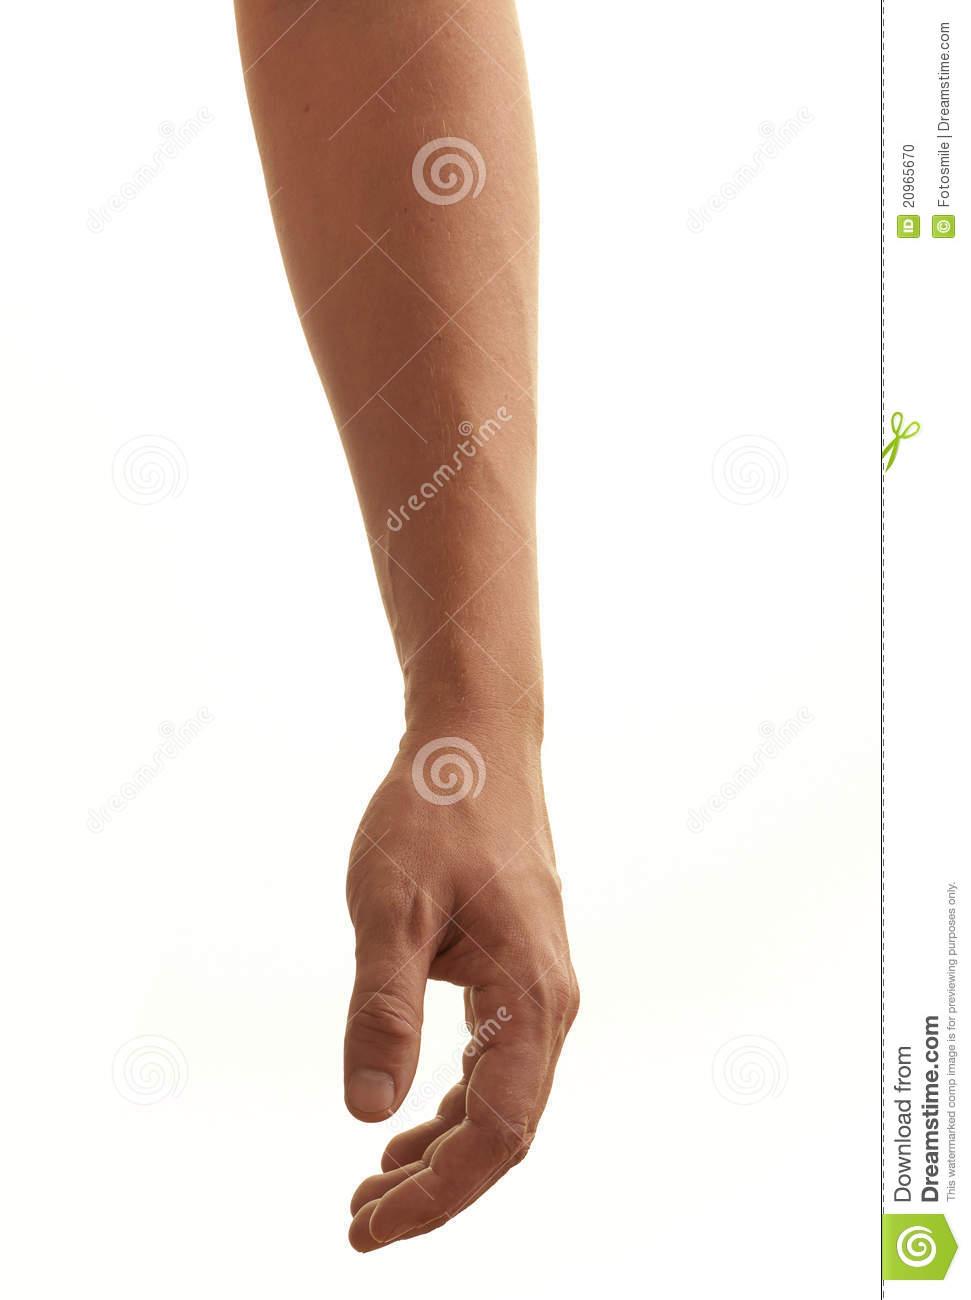 Relaxed male arm stock photo. Image of fingers, background ...